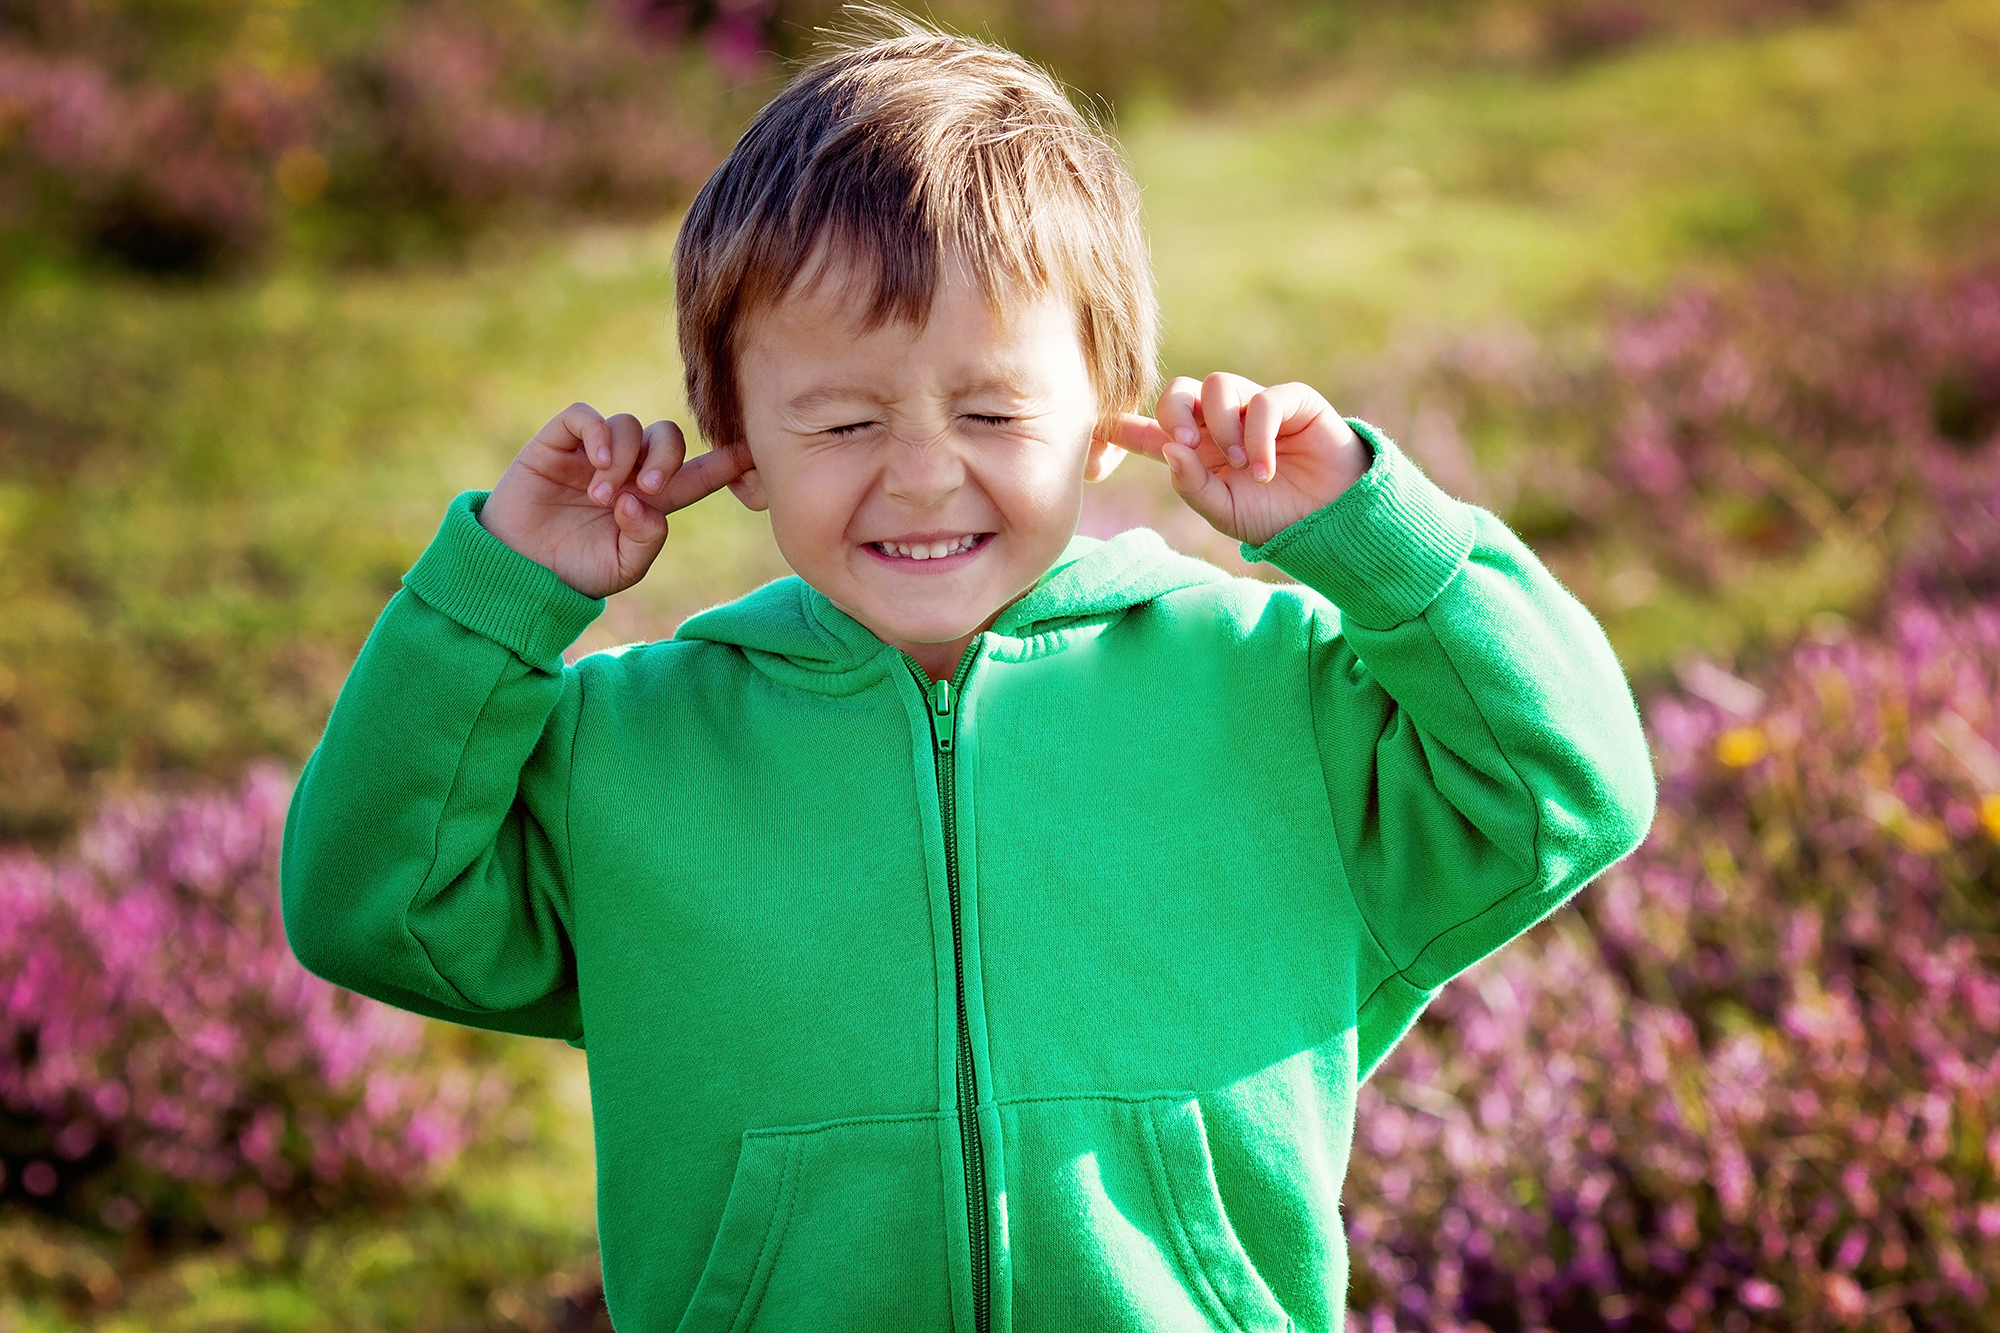 Childhood illnesses linked to hearing loss later in life